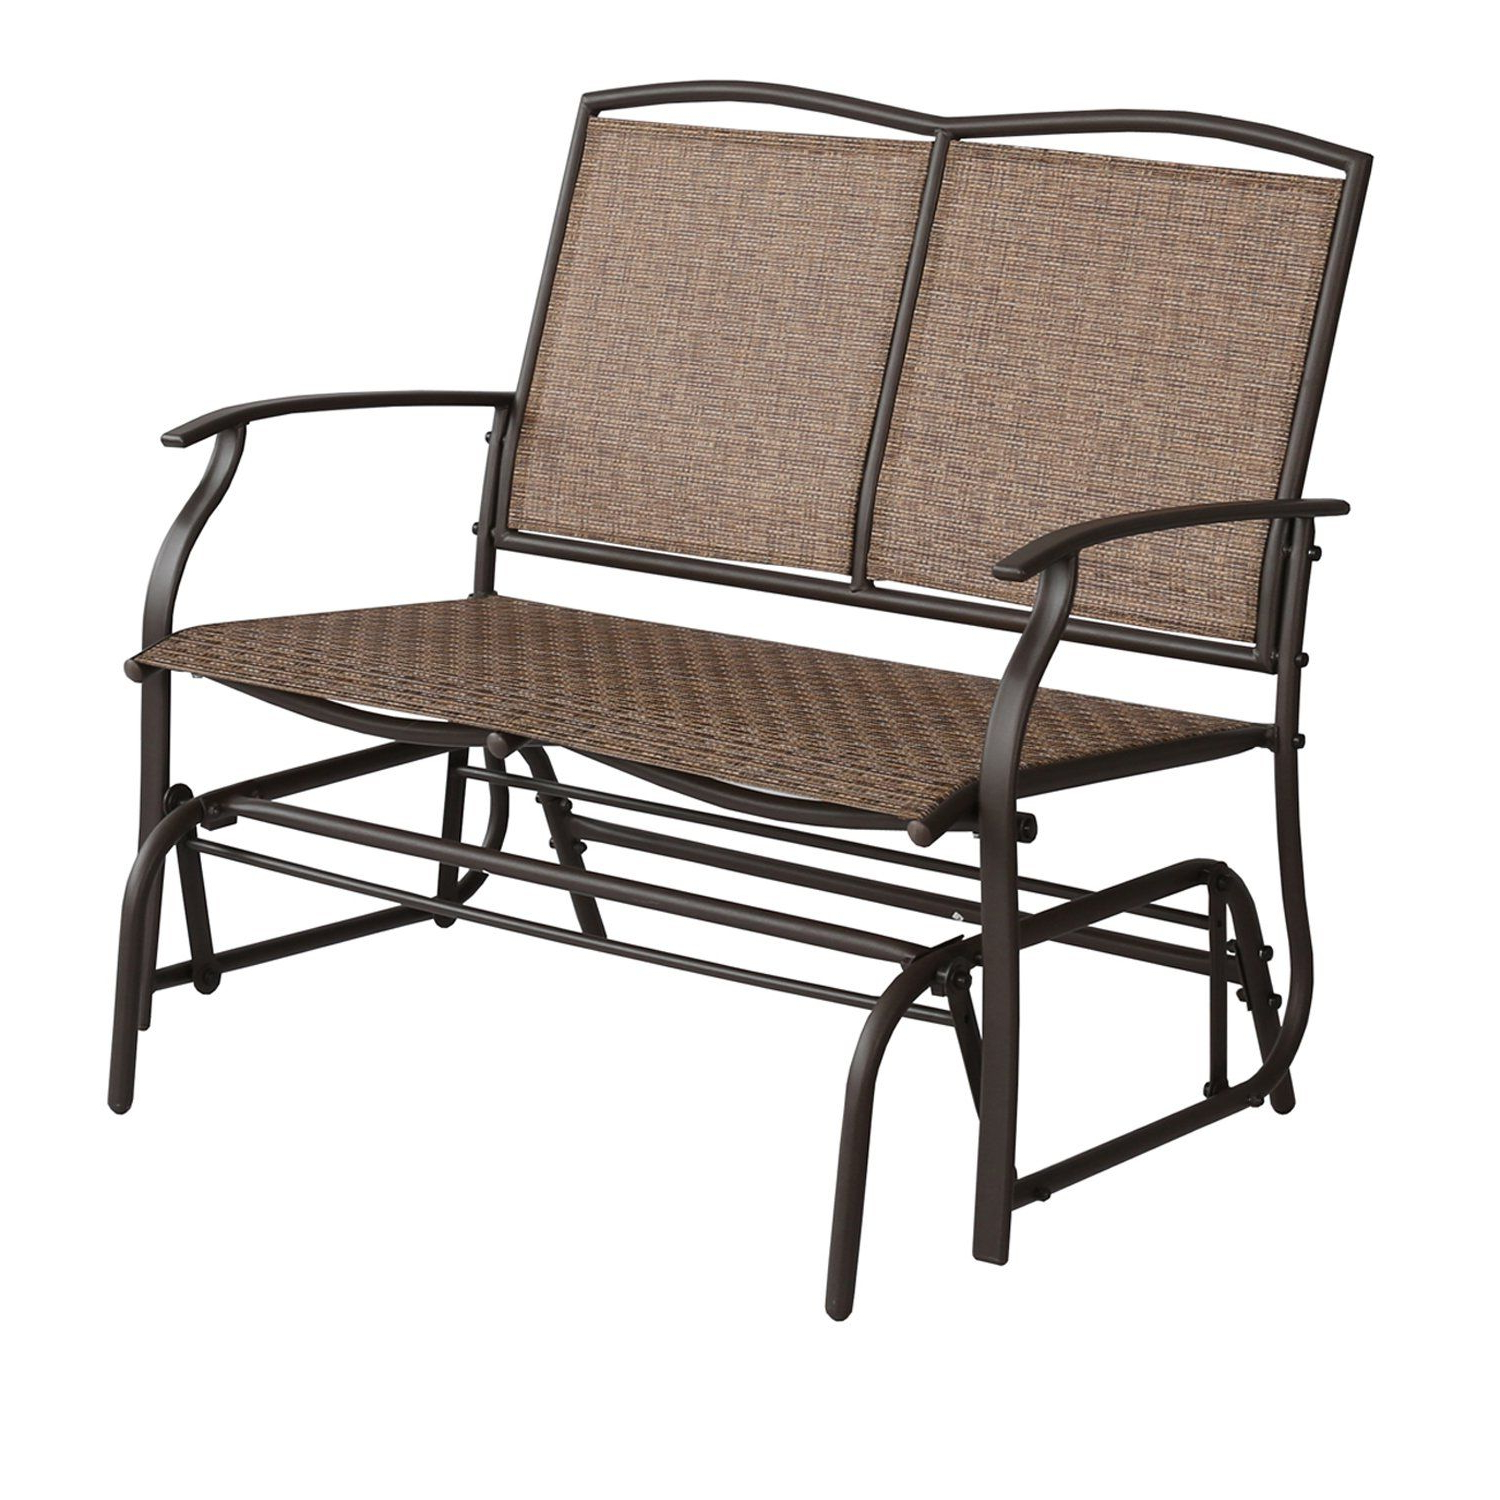 Outdoor Patio Swing Glider Bench Chairs Within Trendy Patio Tree Patio Swing Glider Bench For 2 Person All (View 18 of 30)